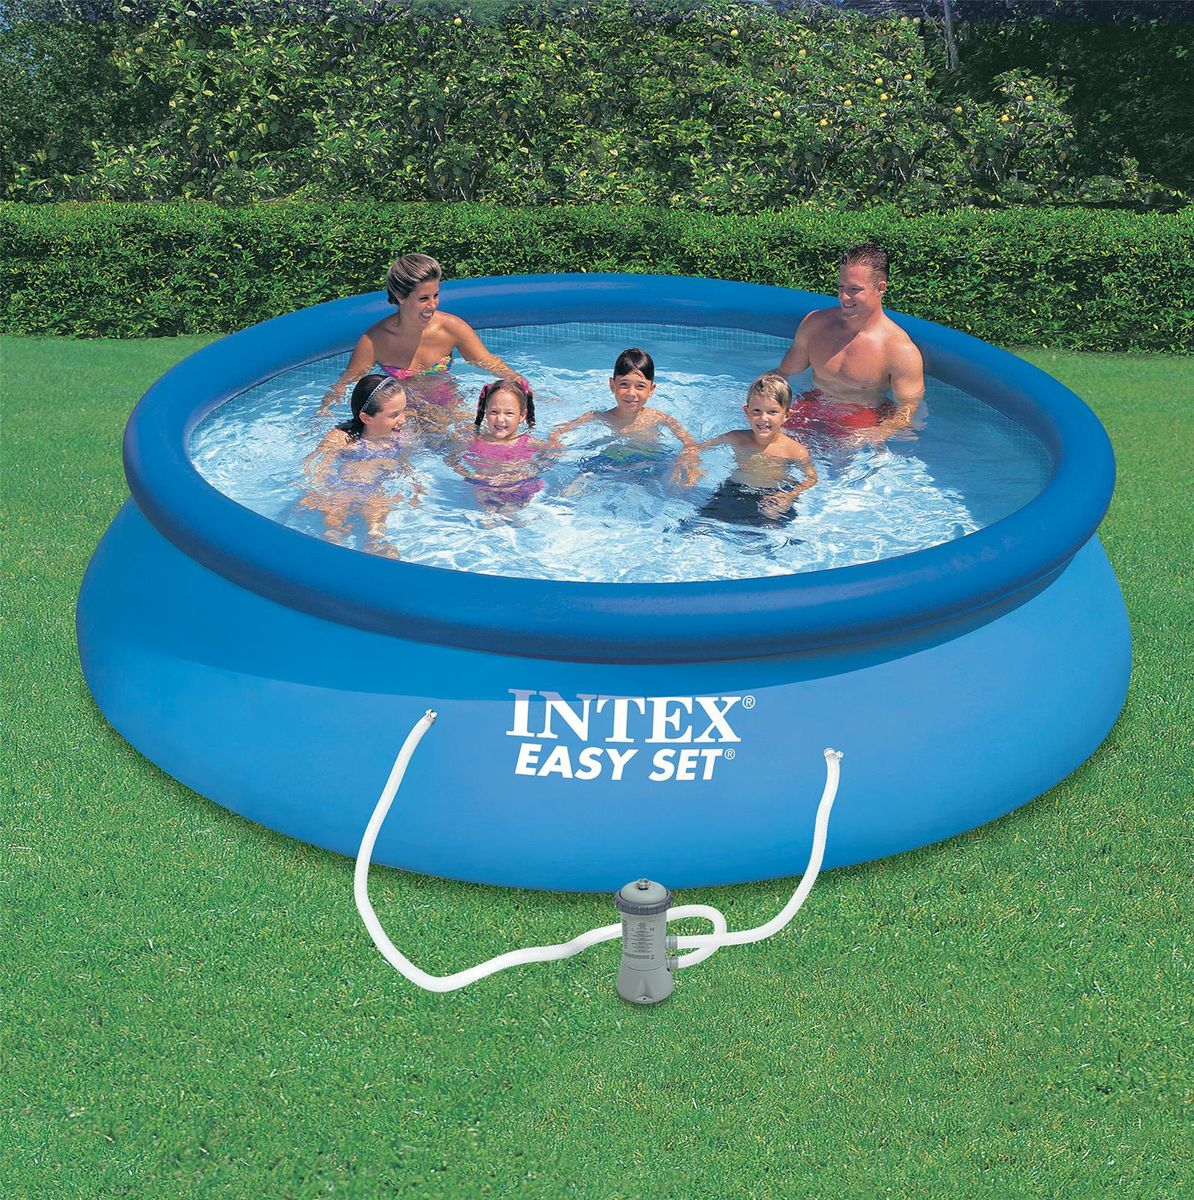 Piscine intex easy set 3 66x0 76 cash piscines - Piscine rectangulaire hors sol intex ...